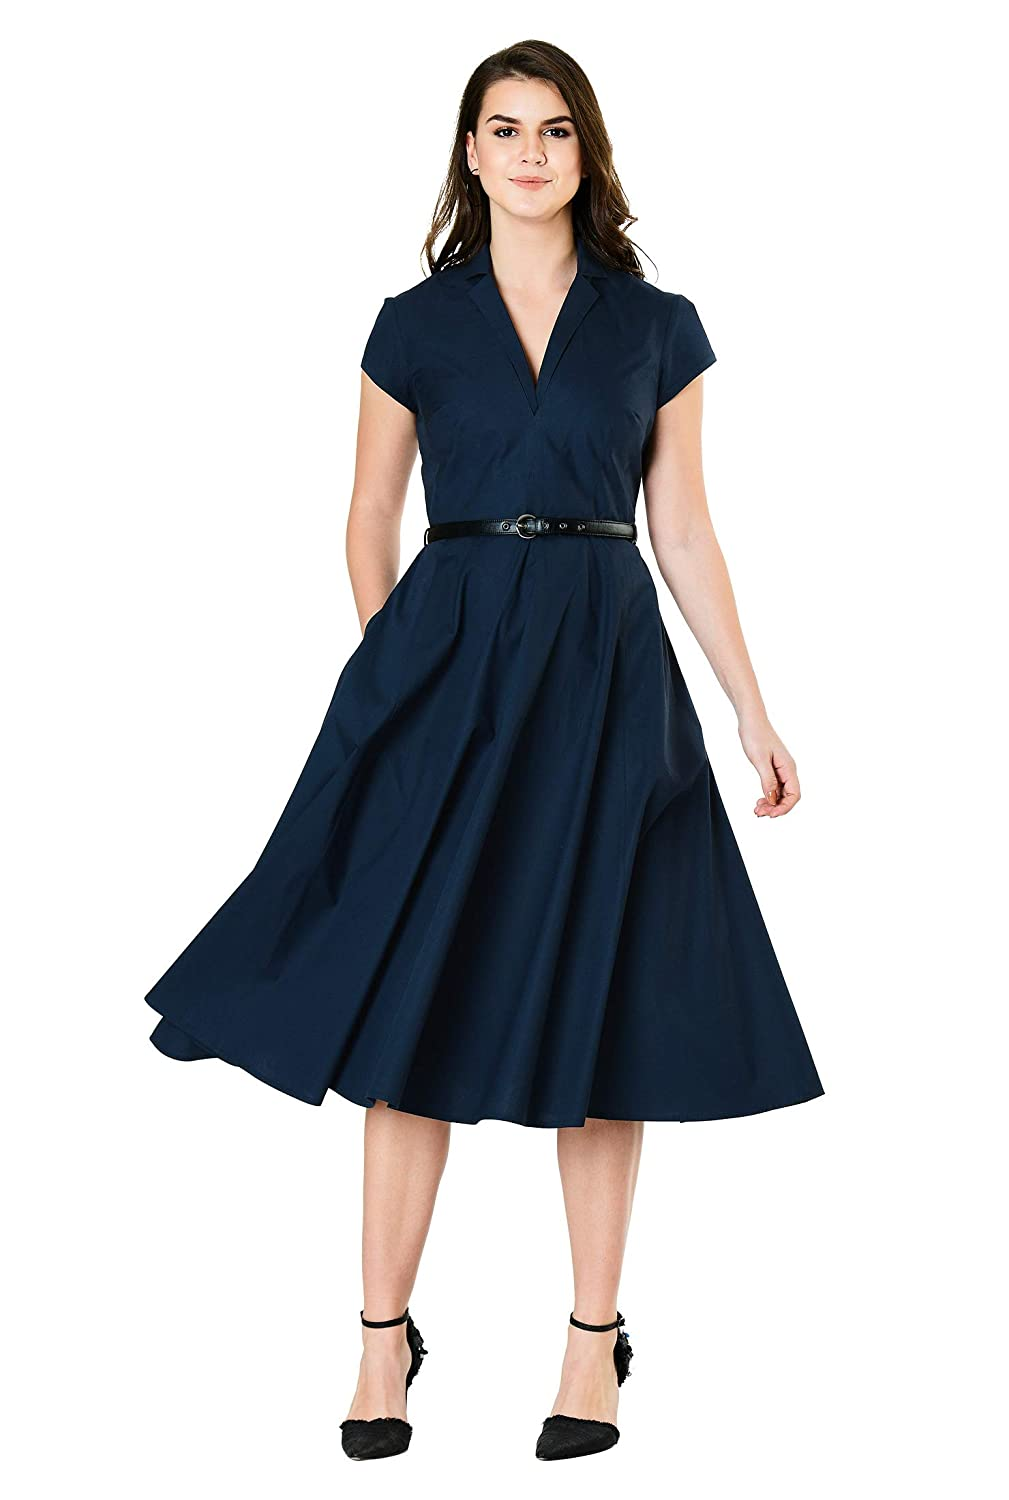 Vintage Tea Dresses, Floral Tea Dresses, Tea Length Dresses eShakti Womens Notch Collar Cotton poplin Belted Dress $69.95 AT vintagedancer.com